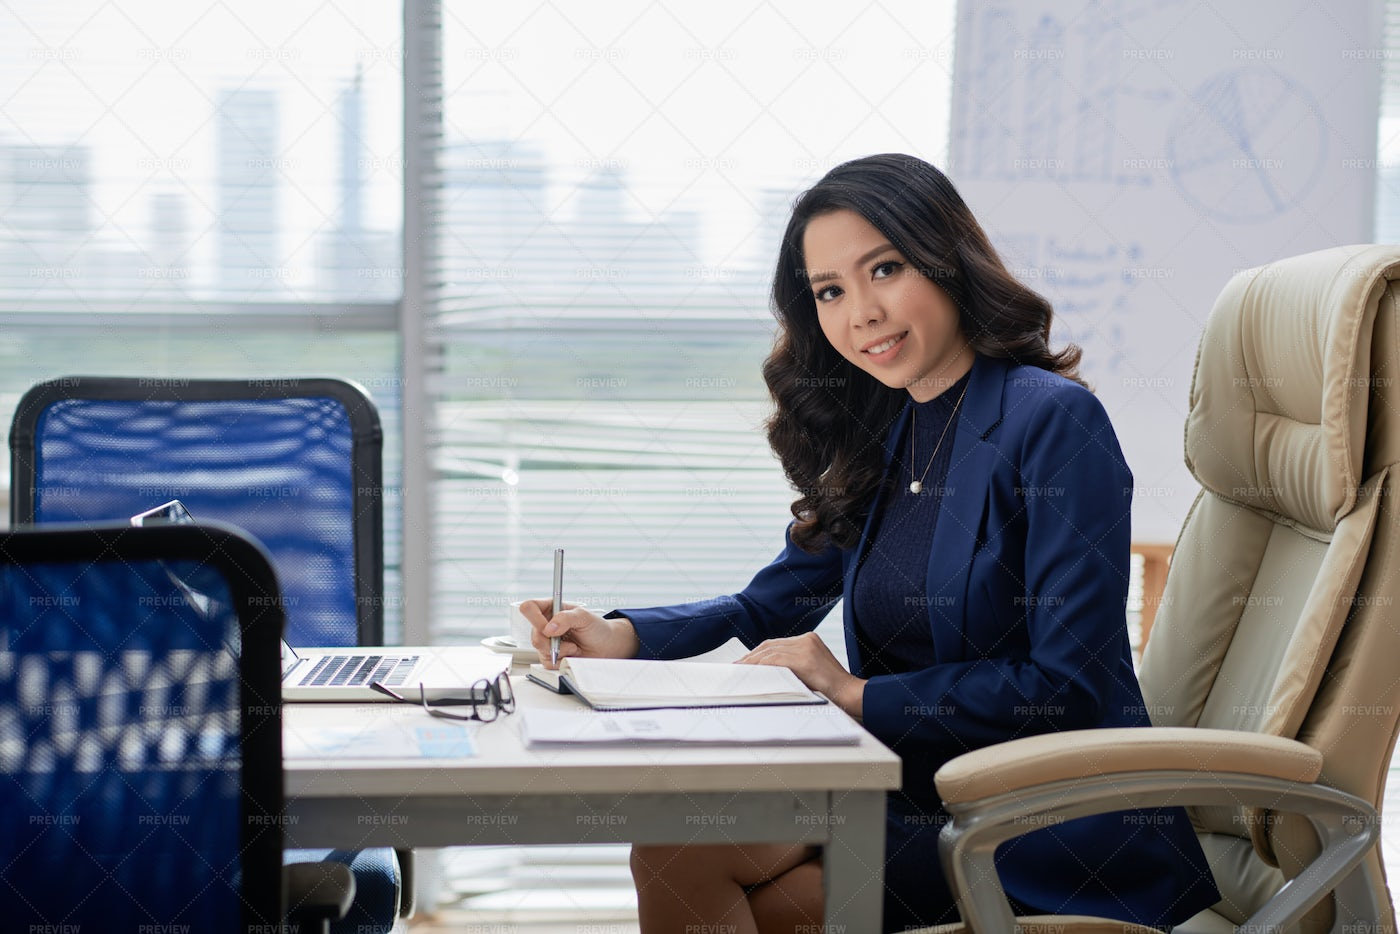 Businesswoman Planning Her Work Day At: Stock Photos